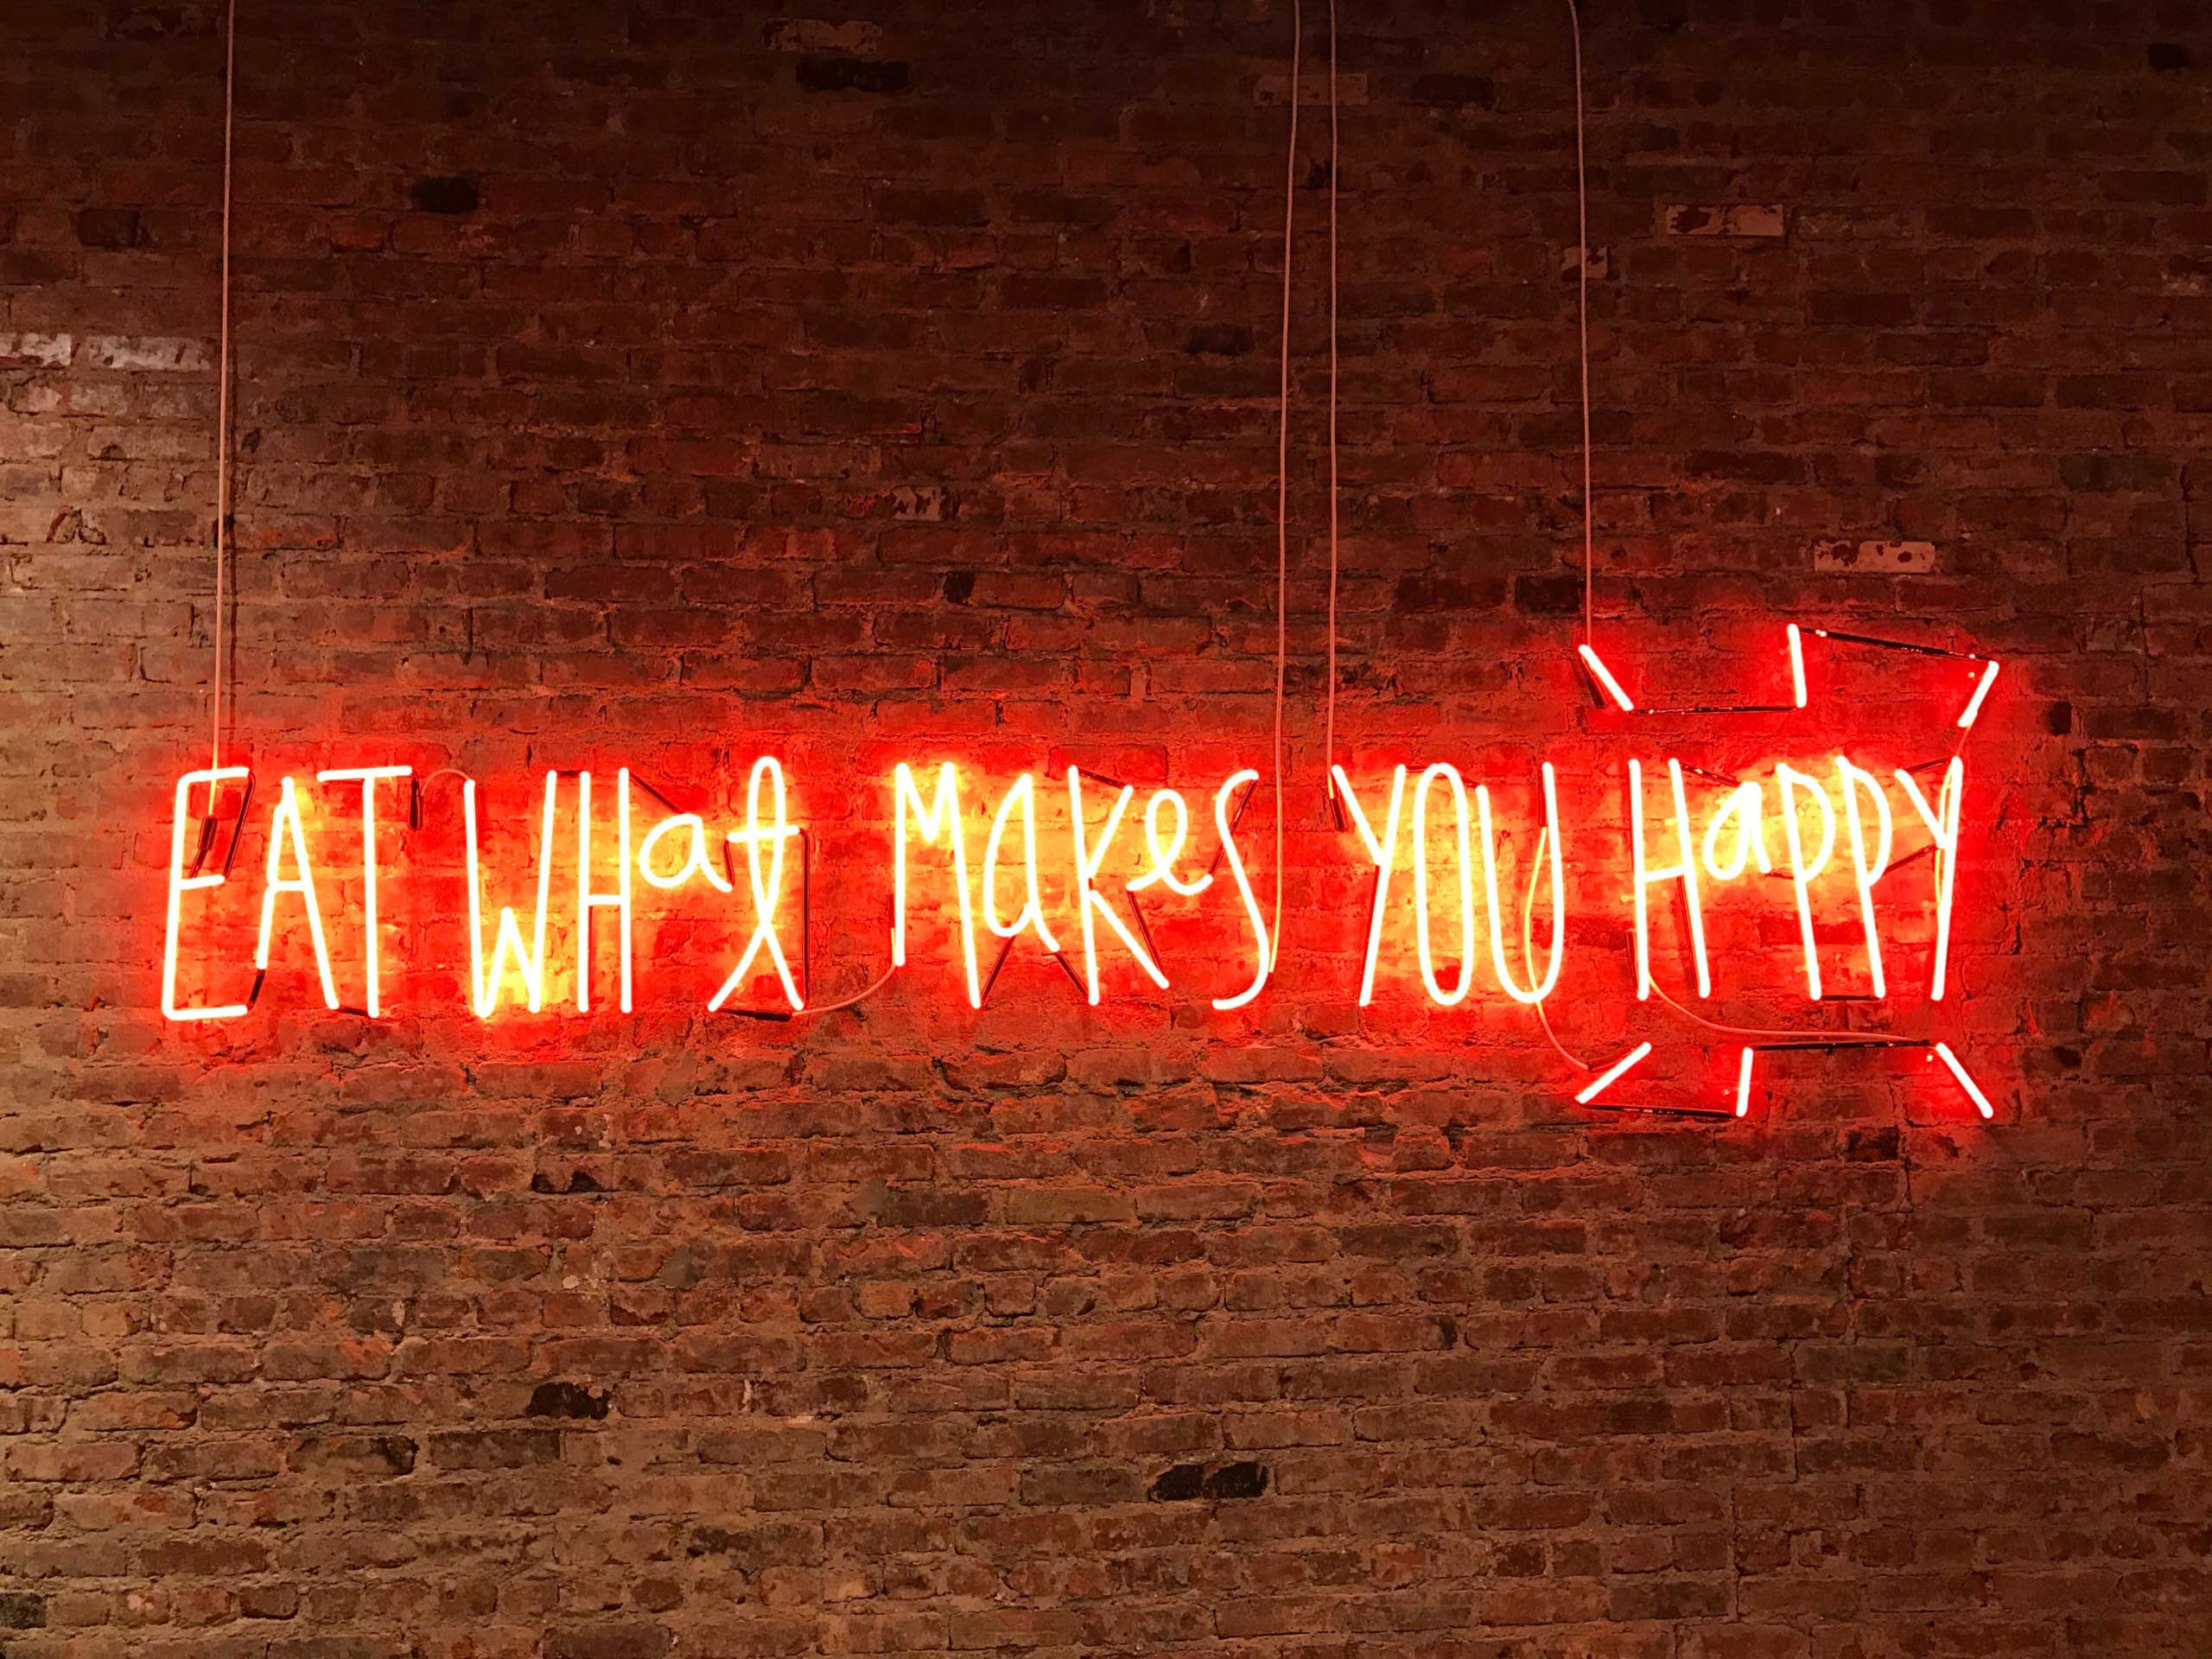 Eat what makes you happy motivational sign